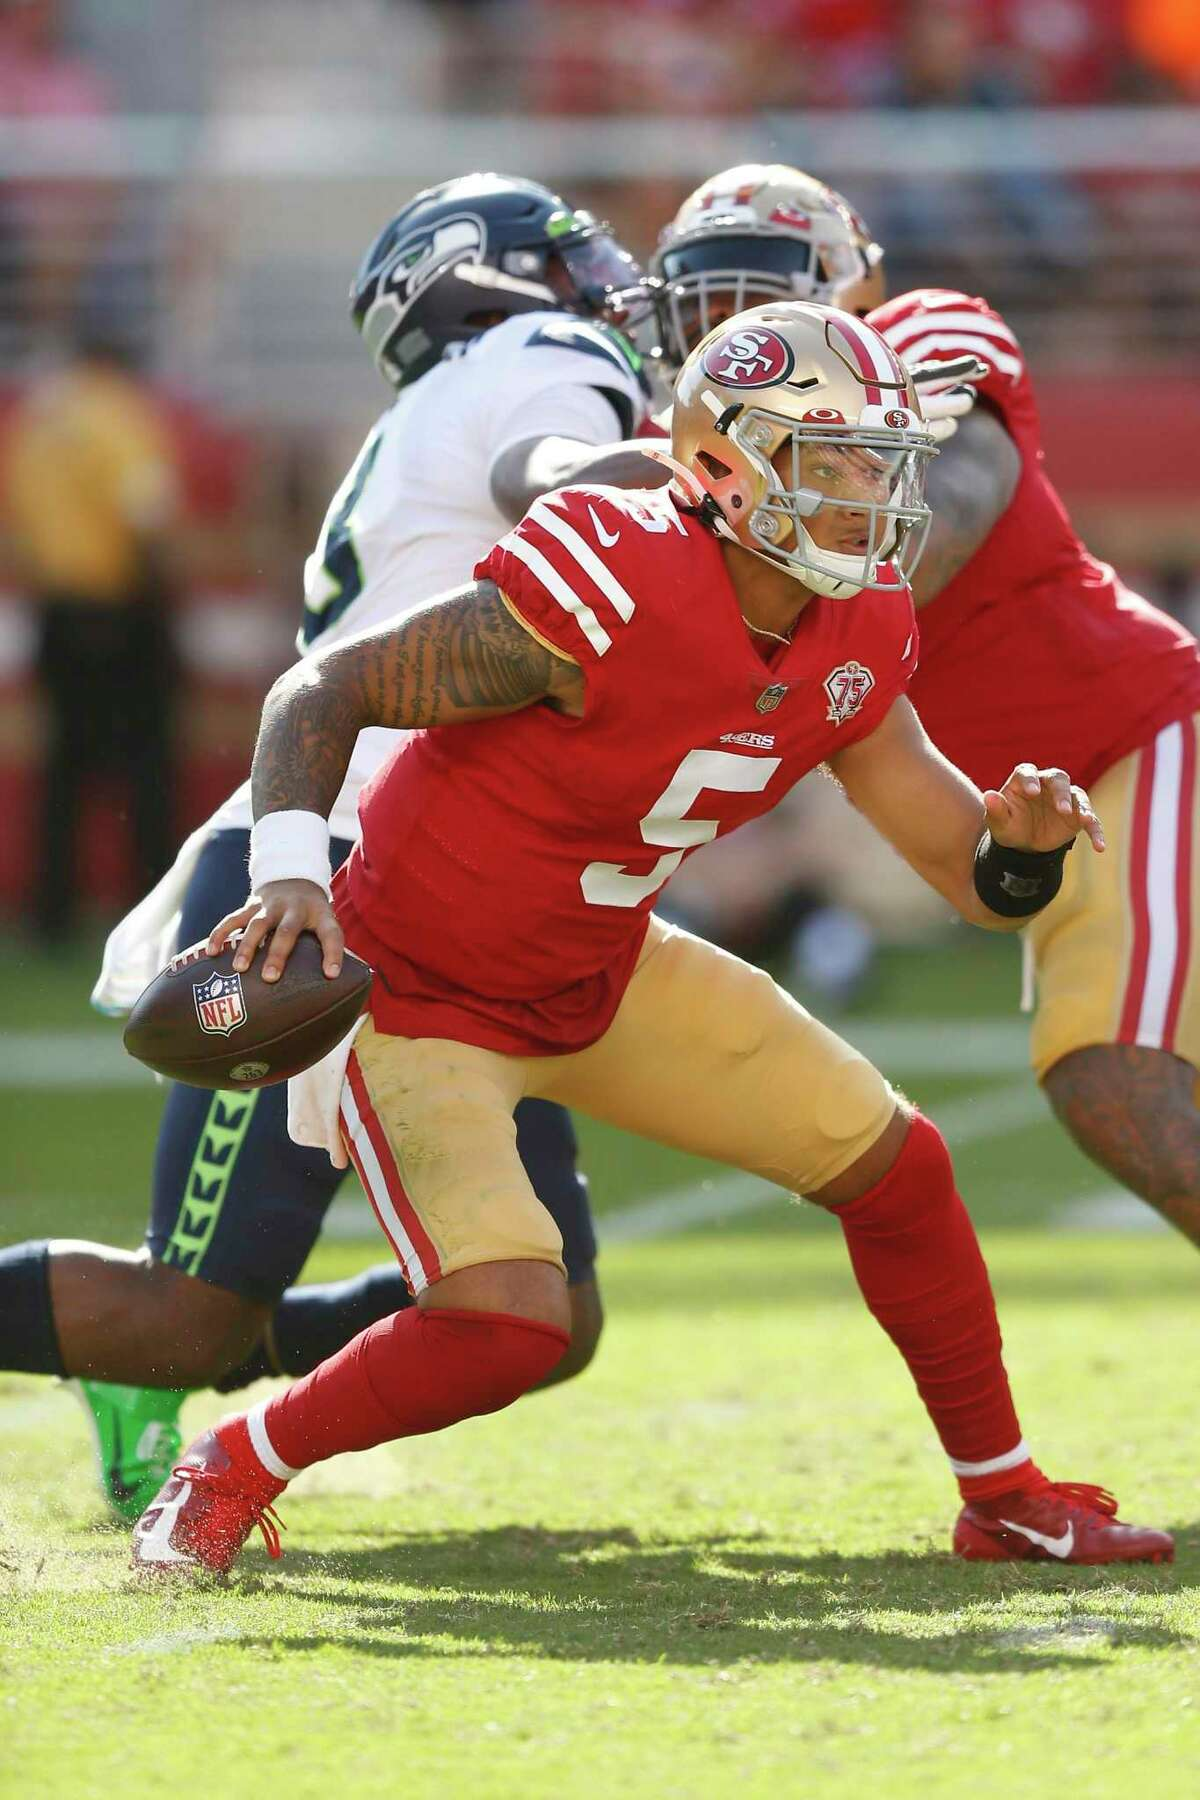 San Francisco 49ers quarterback Trey Lance (5) runs with the ball against the Seattle Seahawks during an NFL football game, Sunday, Oct. 3, 2021 in Santa Clara, Calif. (AP Photo/Lachlan Cunningham)